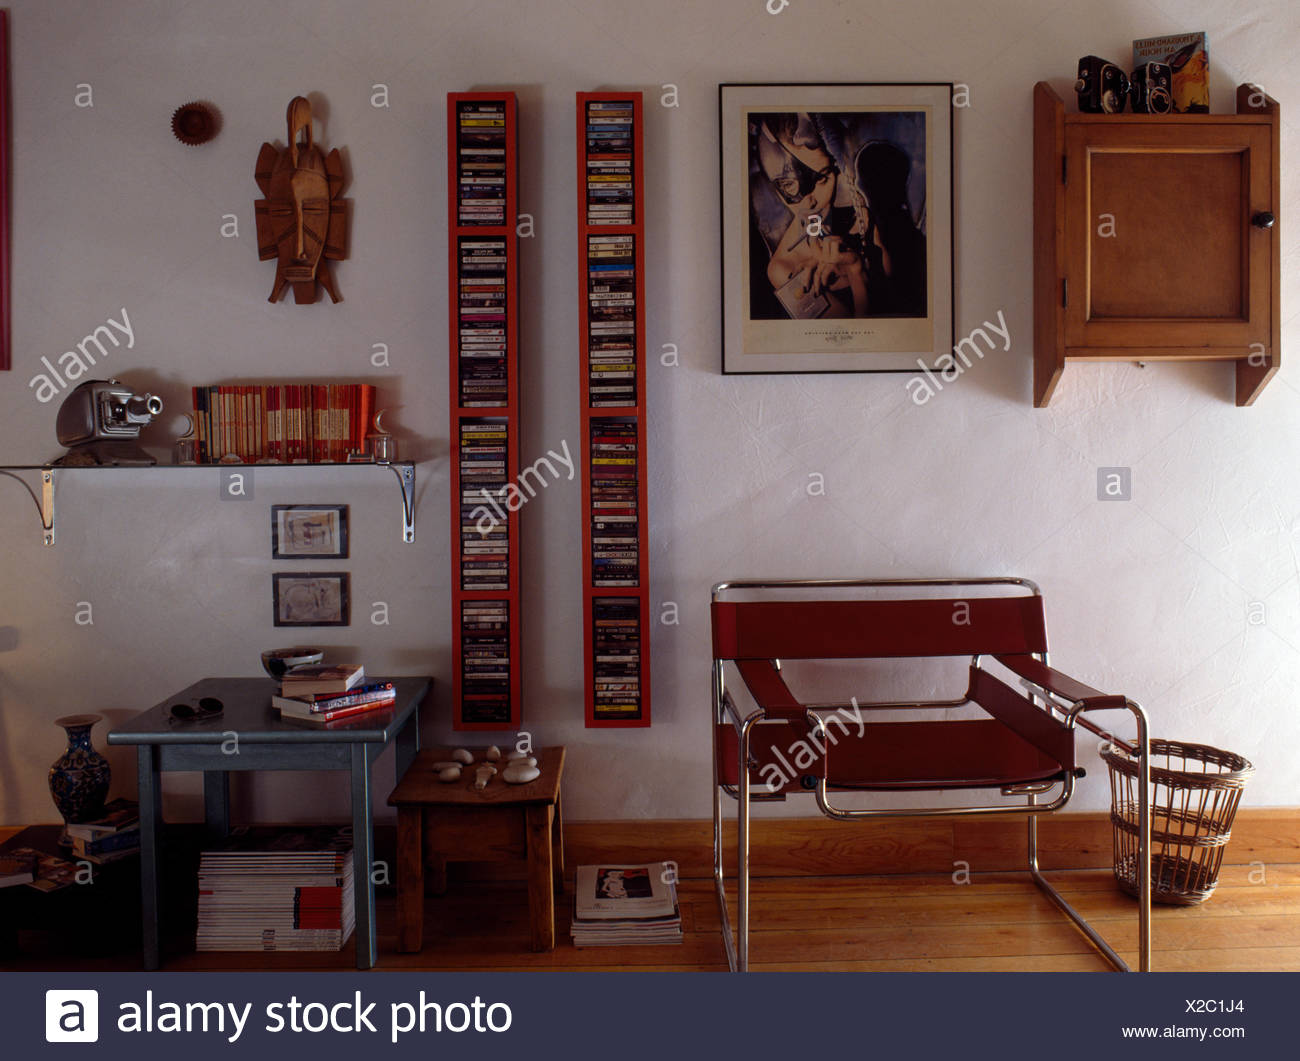 Marcel Breuer chair in early nineties living room with cds in vertical racks on the wall - Stock Image